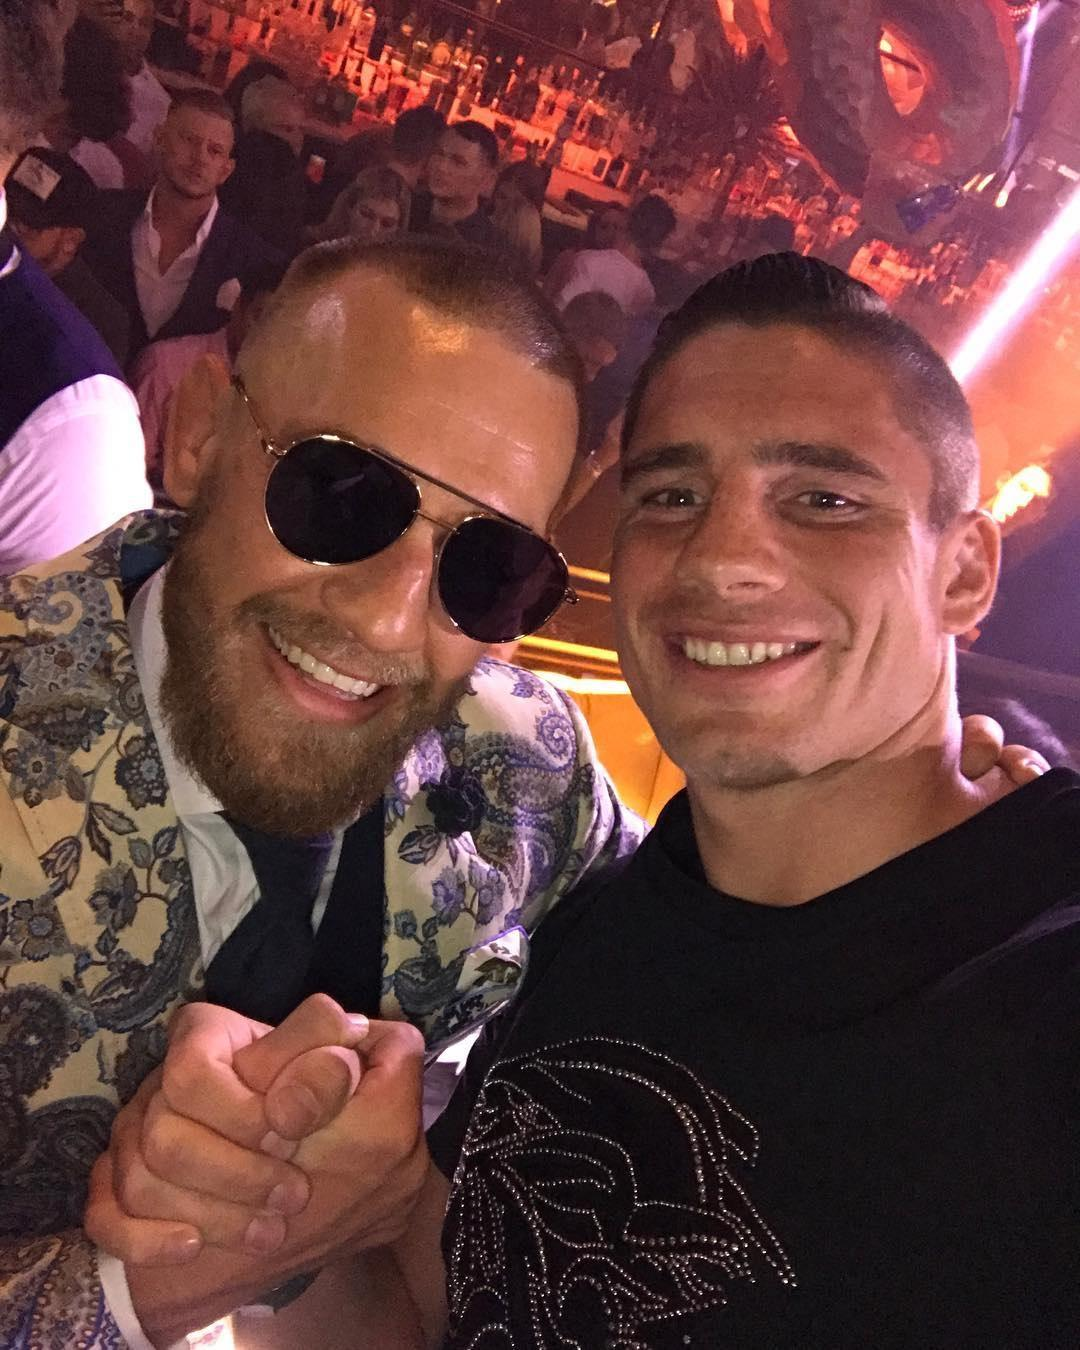 Conor McGregor is a Rico Verhoeven fan